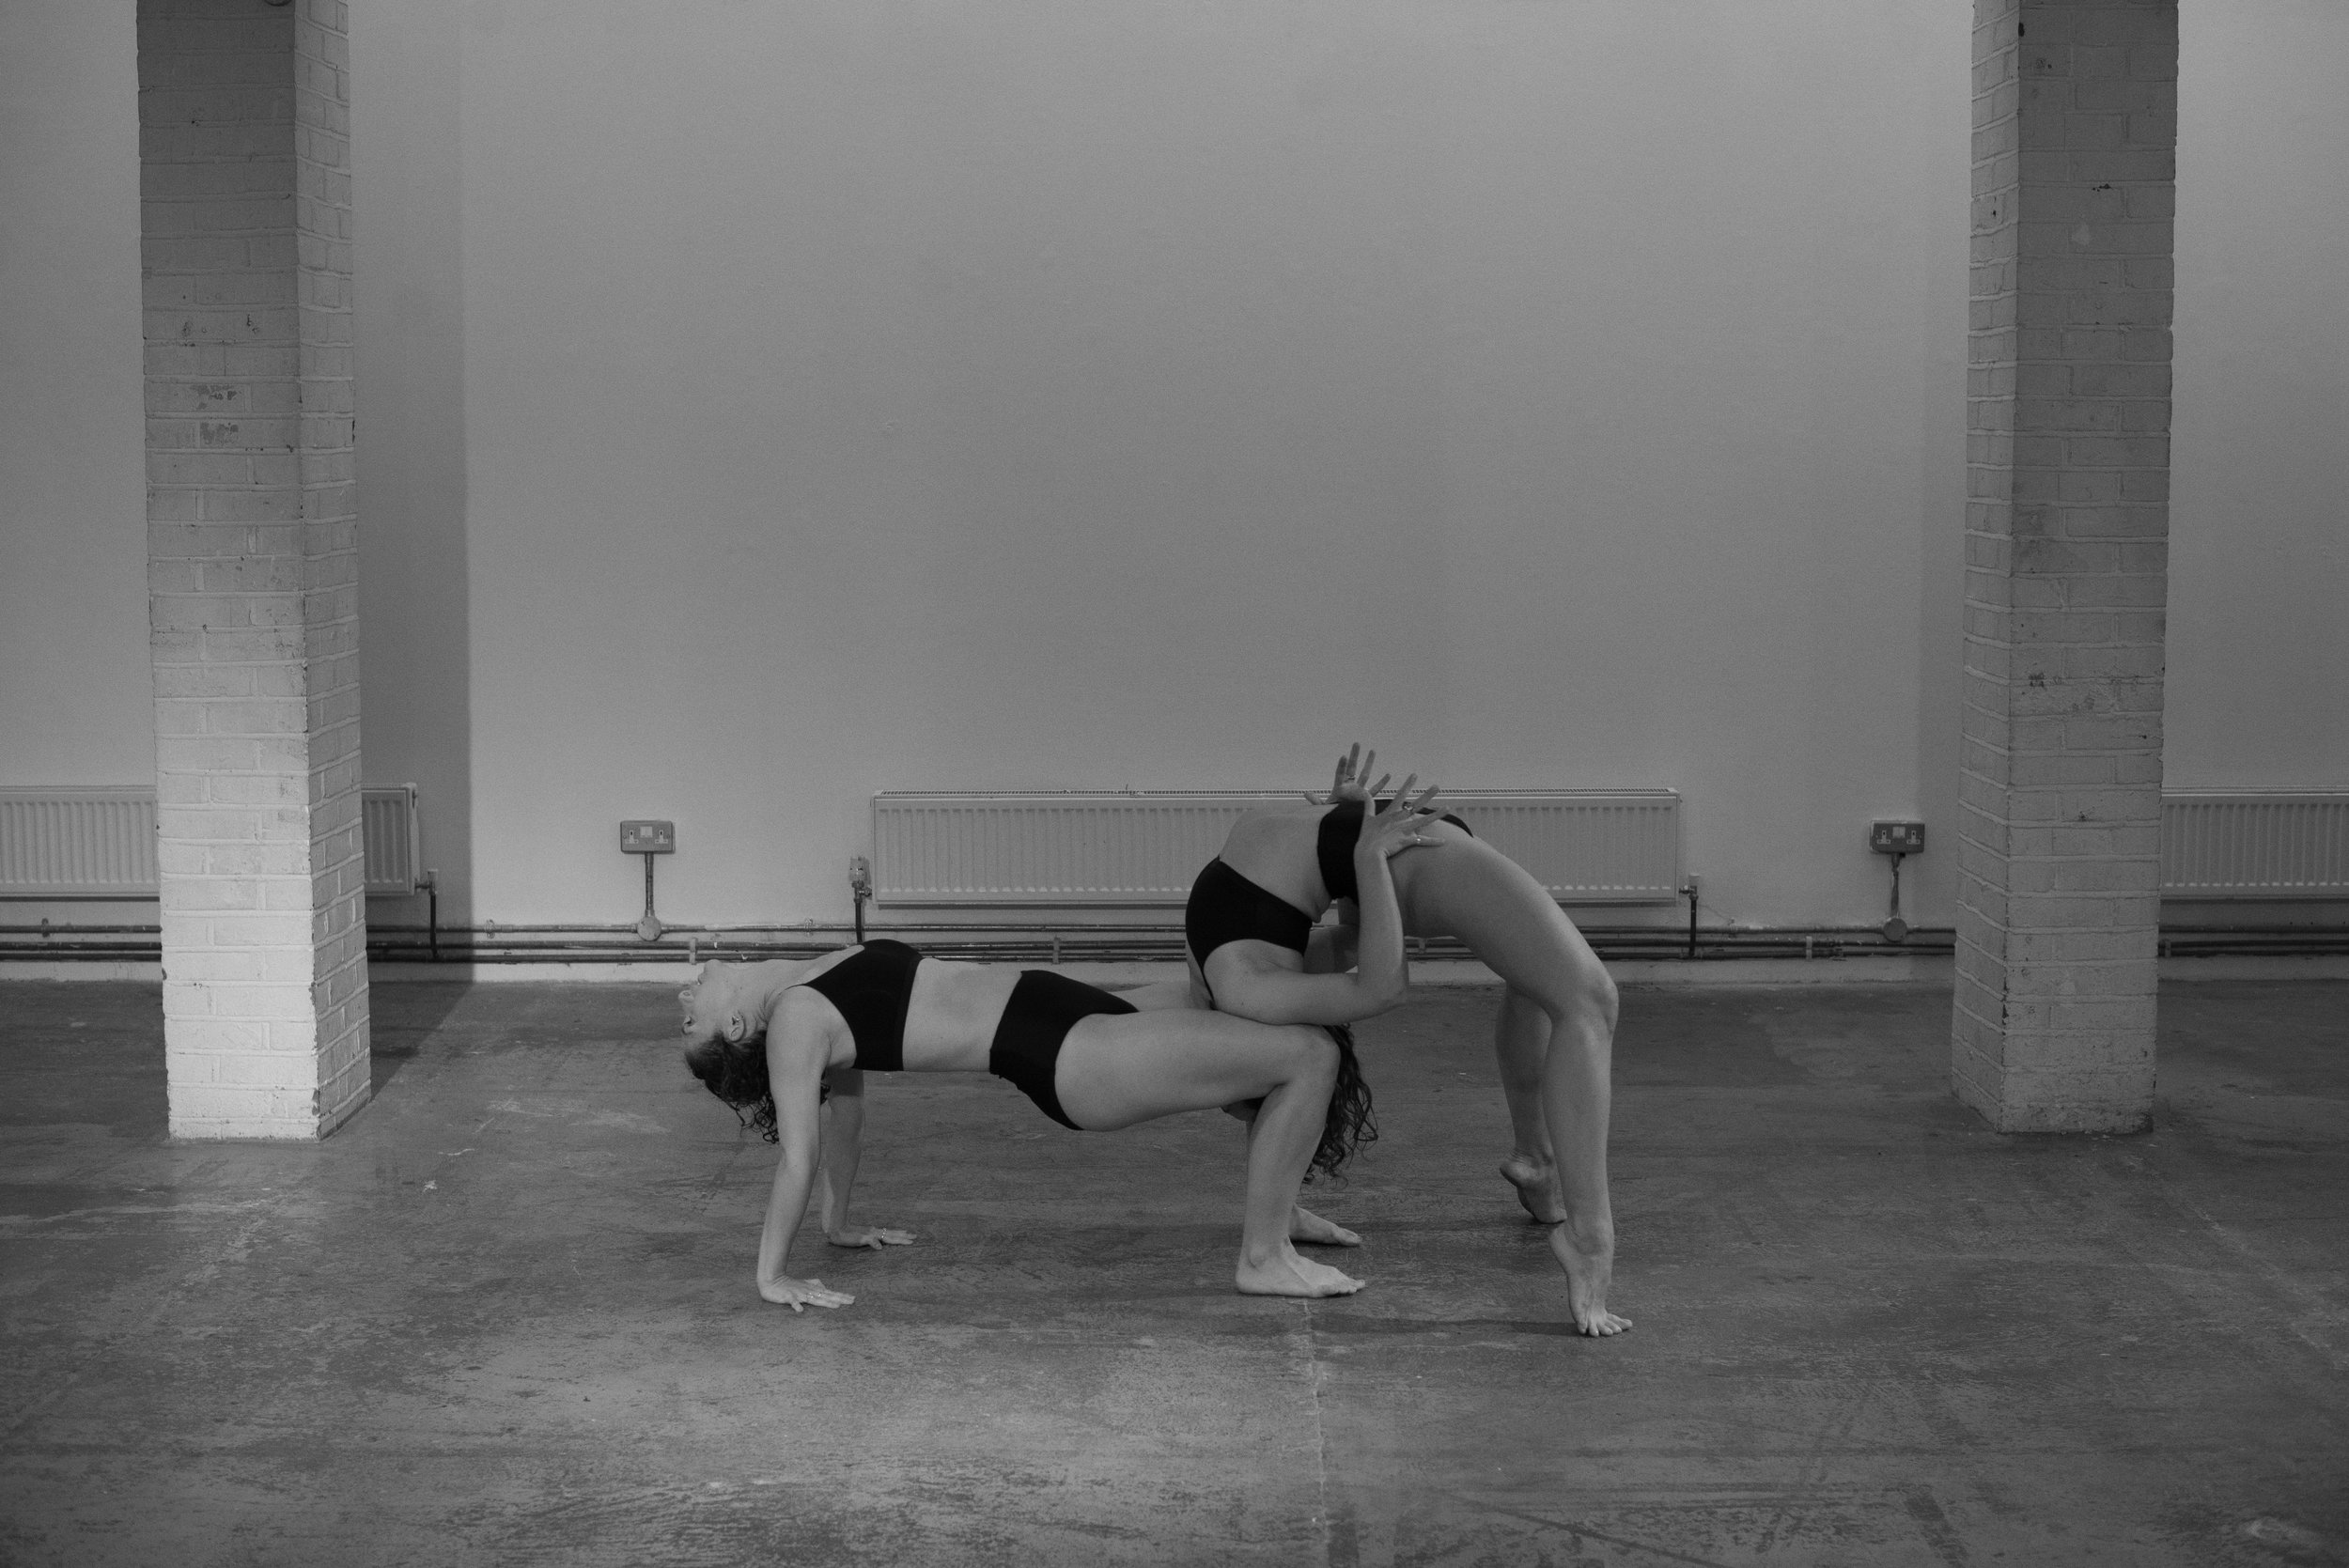 'Act 1, Part 2' by SISTA SISTA performed at Guest Projects, Art Night London: Curated by Cairo Clarke in response to Hannah Perry's 'Act 1, Part 1'. Image by Dave Blackburn. Dancers: Madison Capel-Bird & Lydia Buckler (2017)